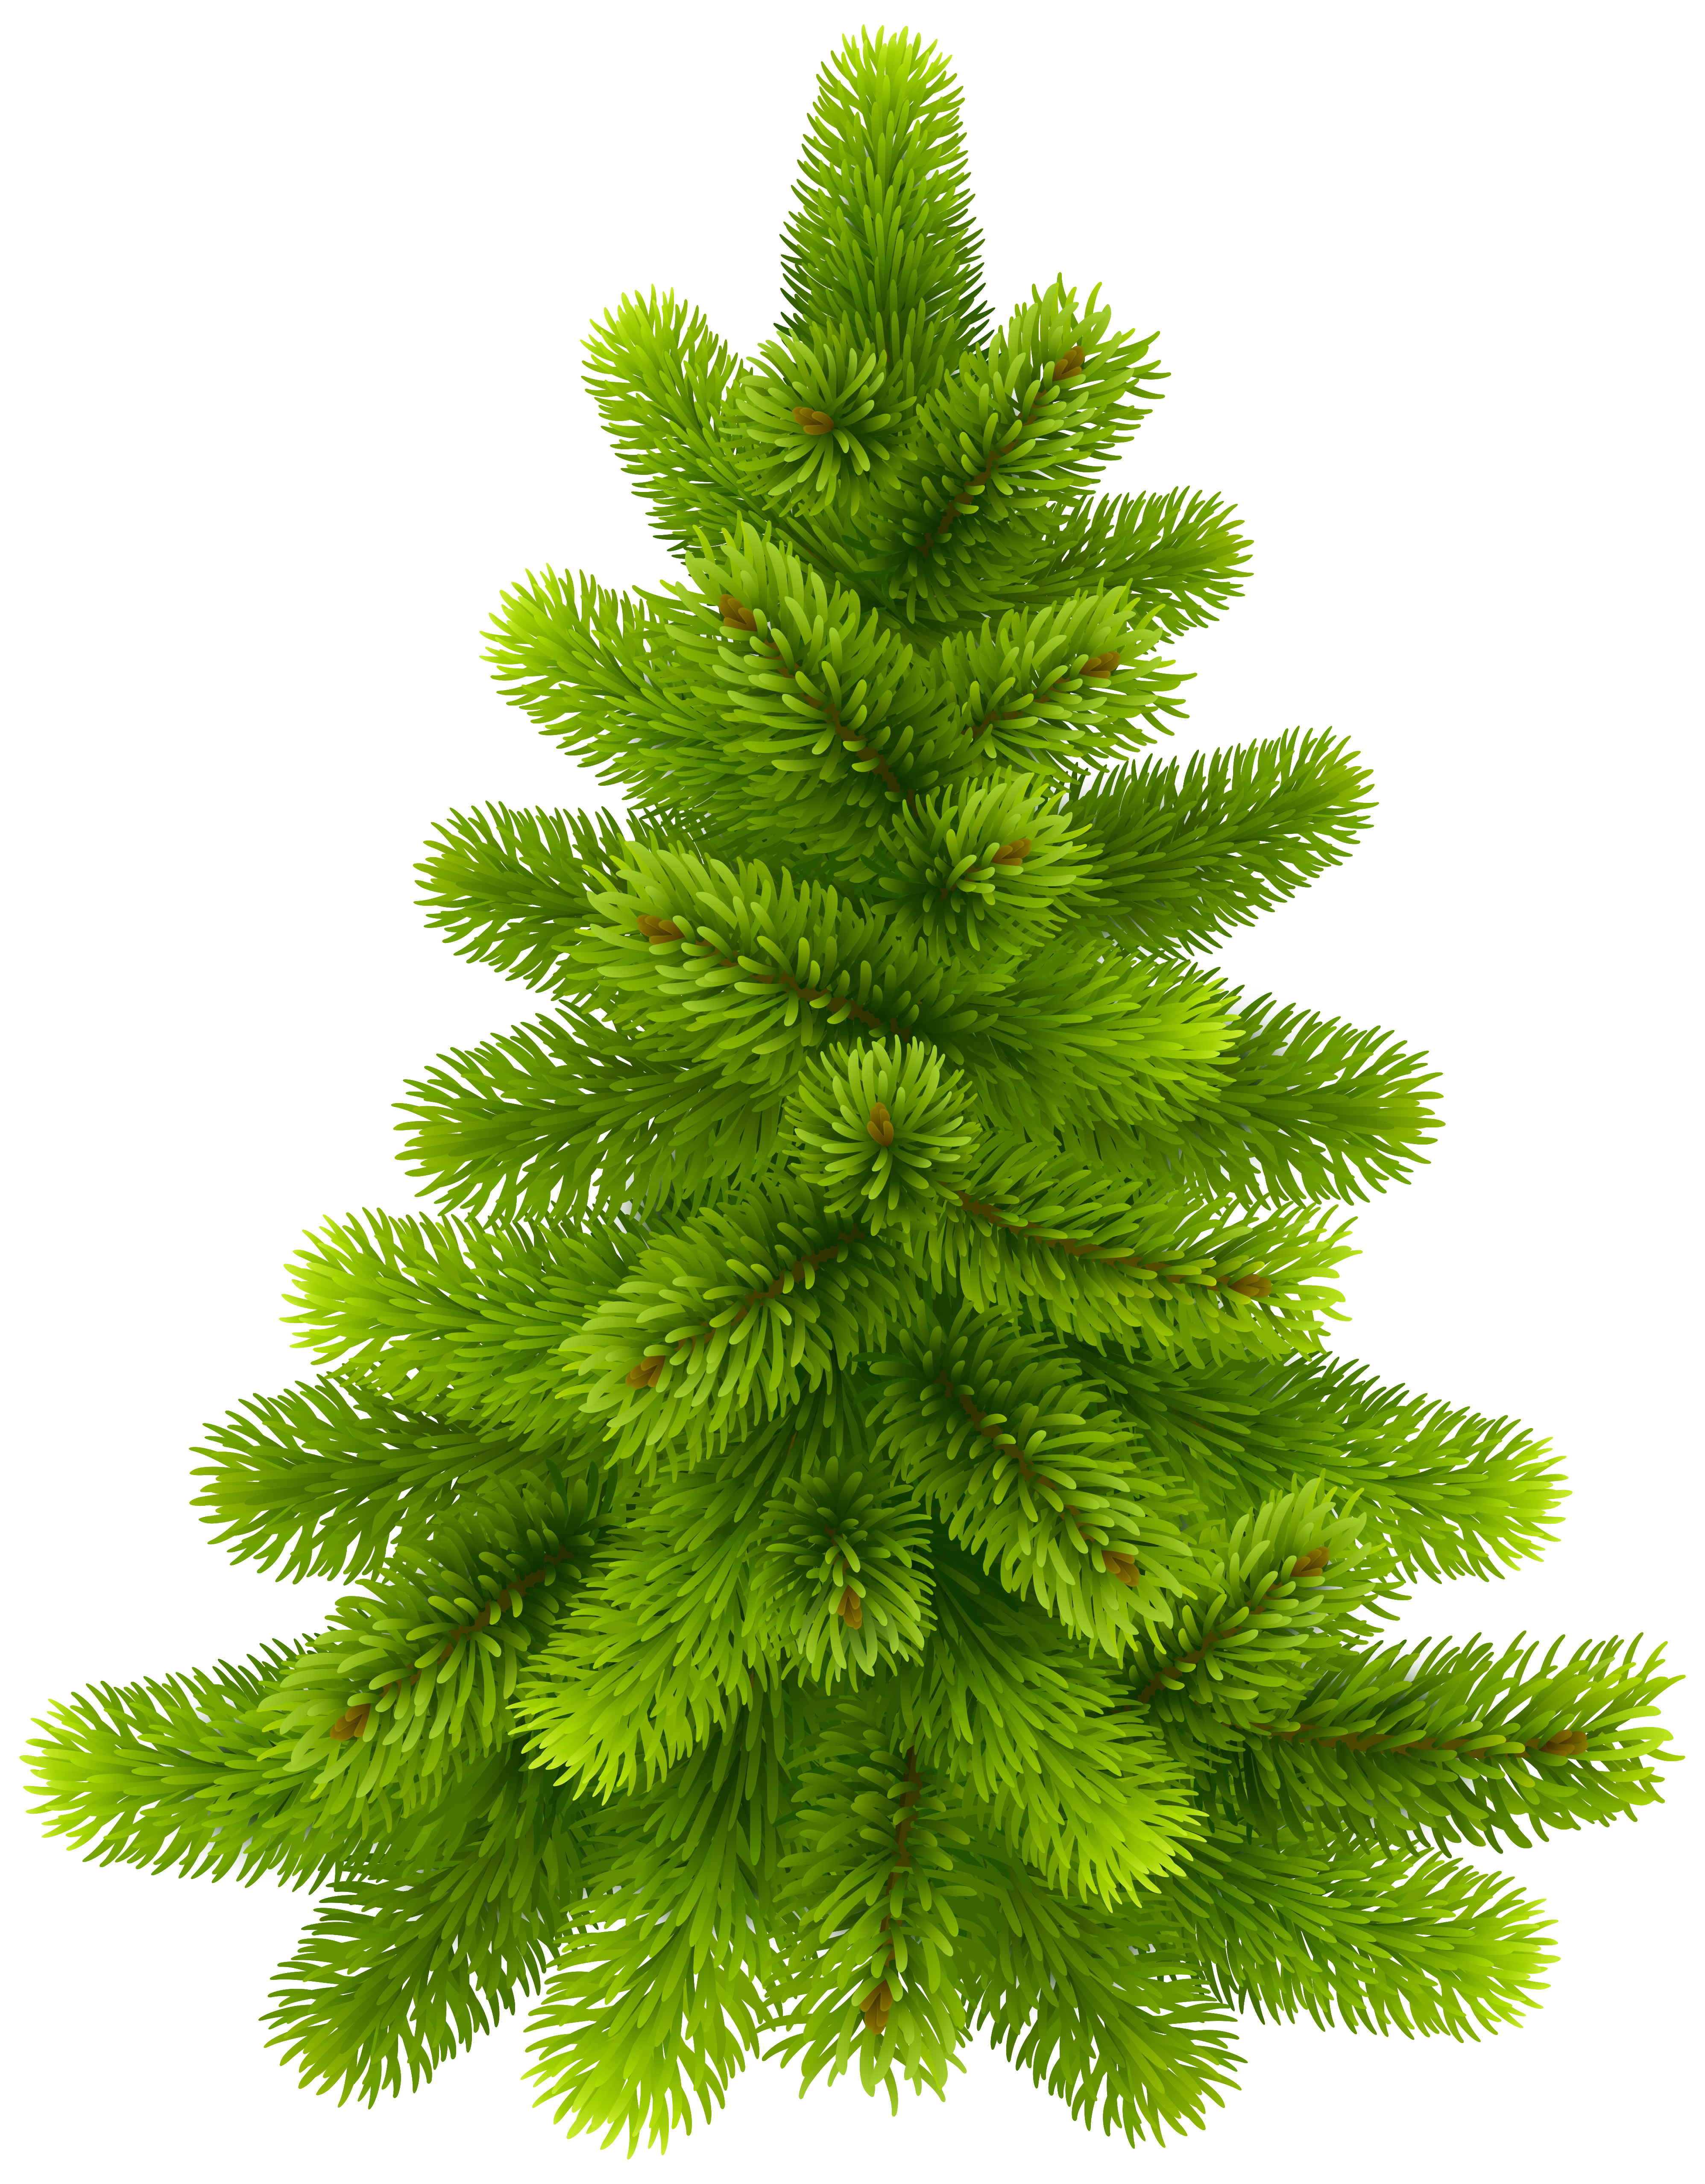 Tree png clip art. Clipart trees pine